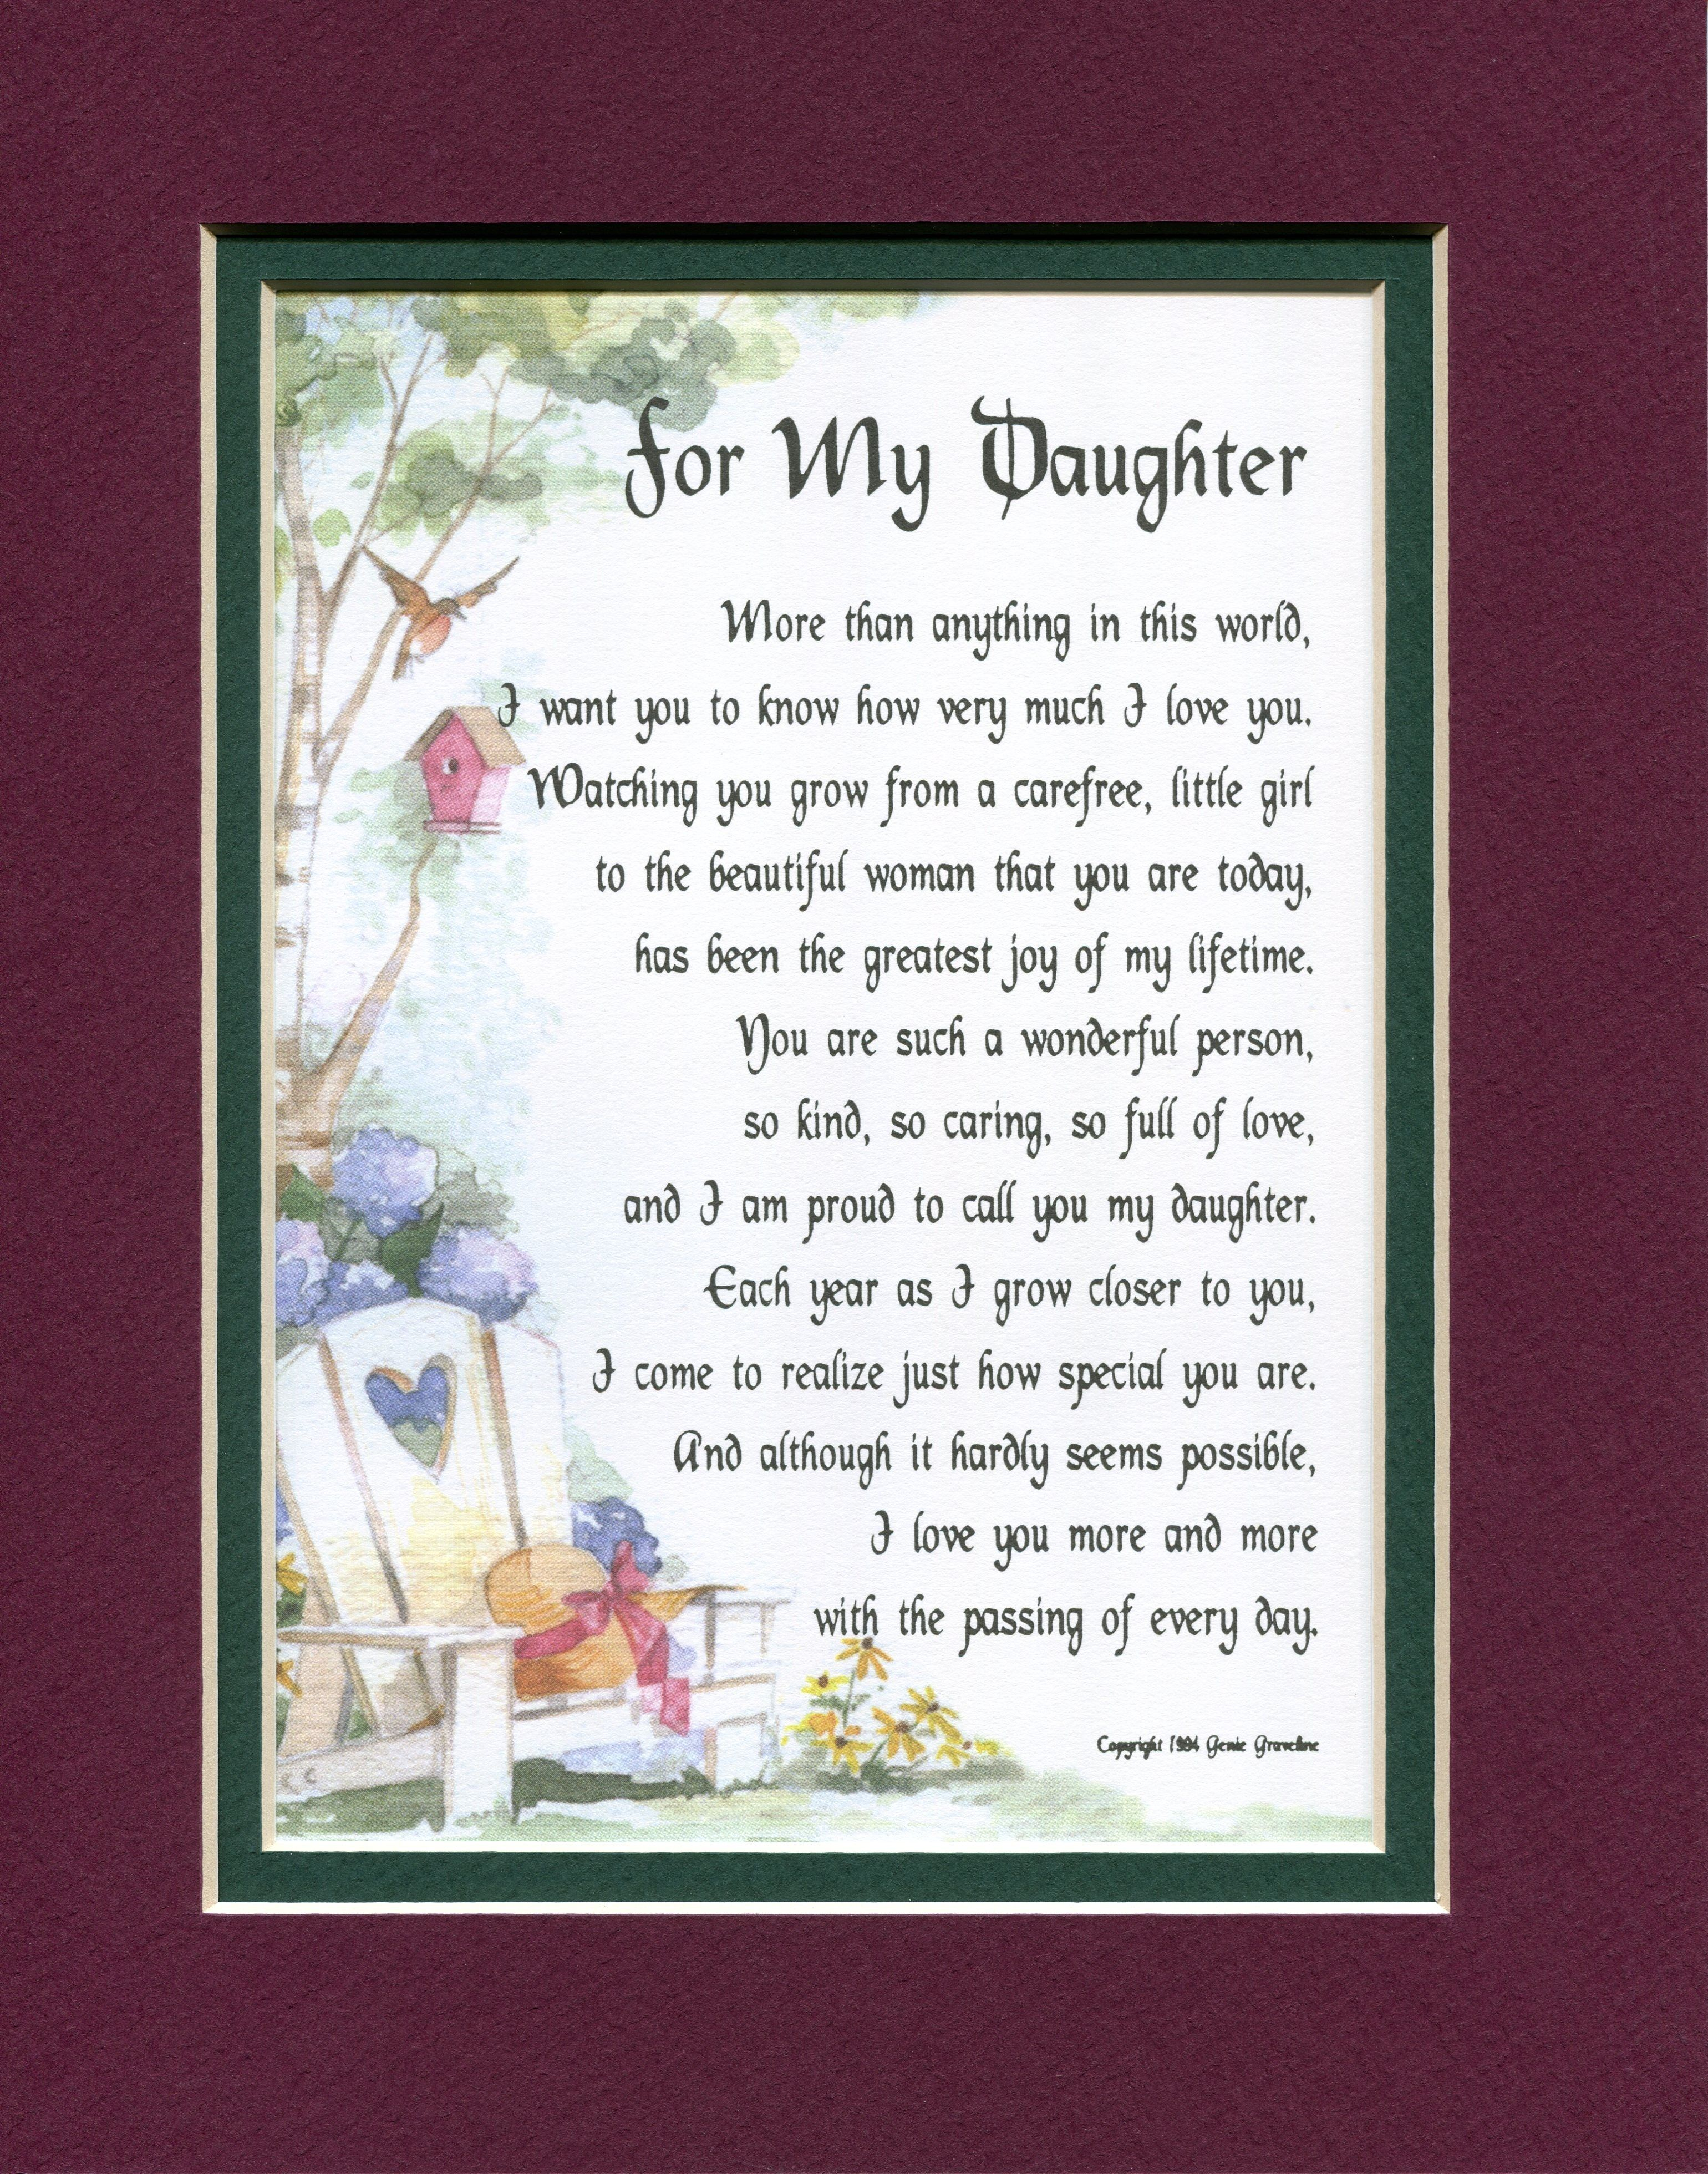 For My Daughter 47 Birthday wishes for daughter